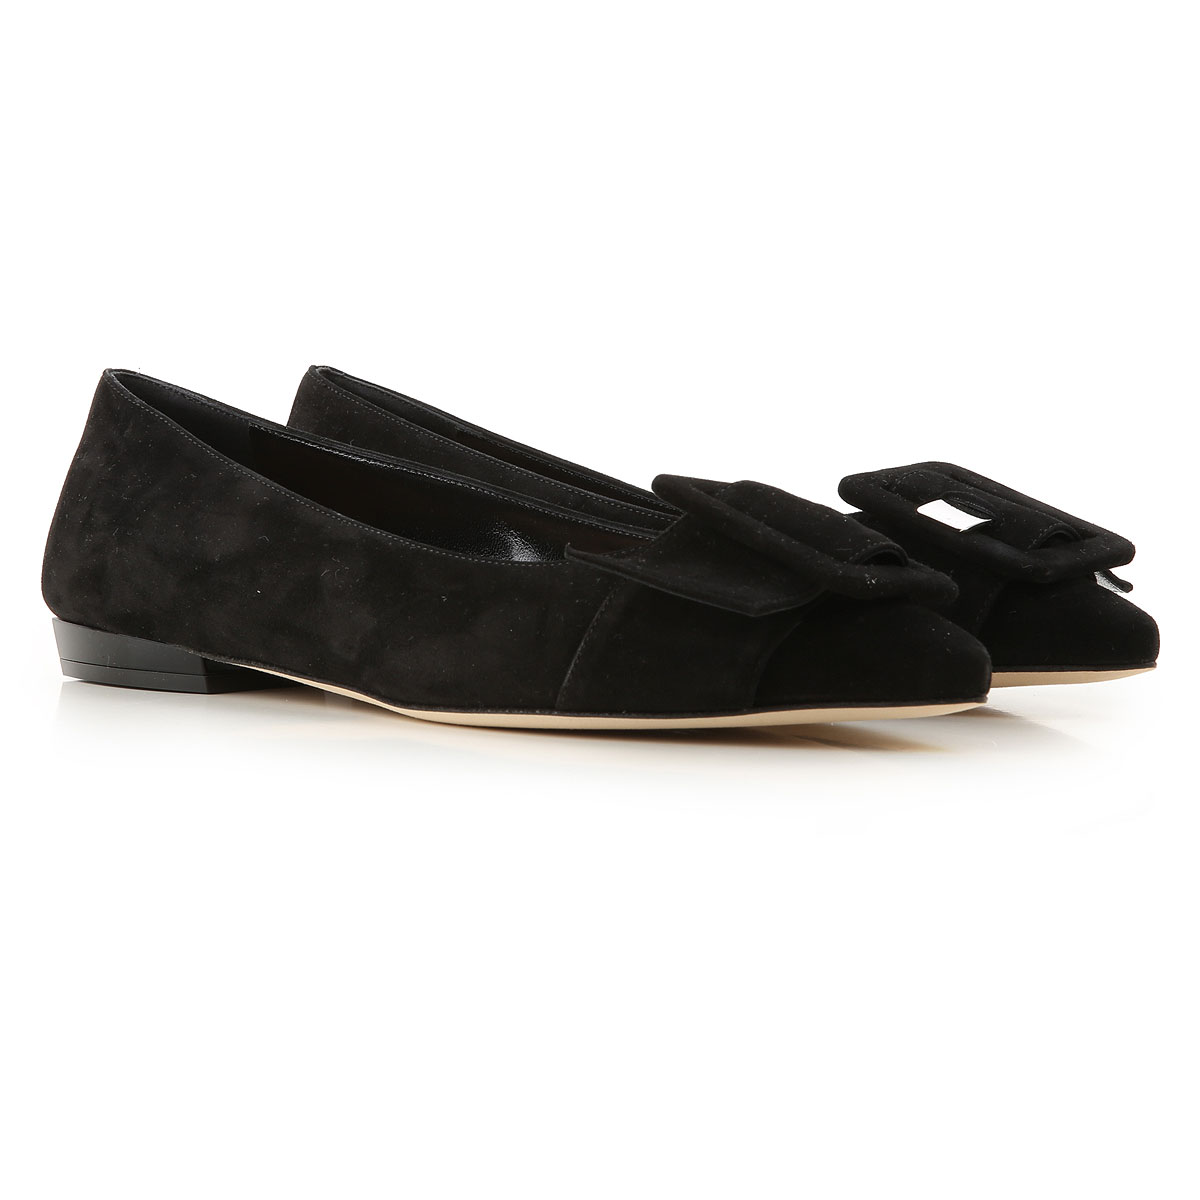 Sergio Rossi Ballet Flats Ballerina Shoes for Women On Sale, Black, Suede leather, 2019, 10 5 6 6.5 7 9